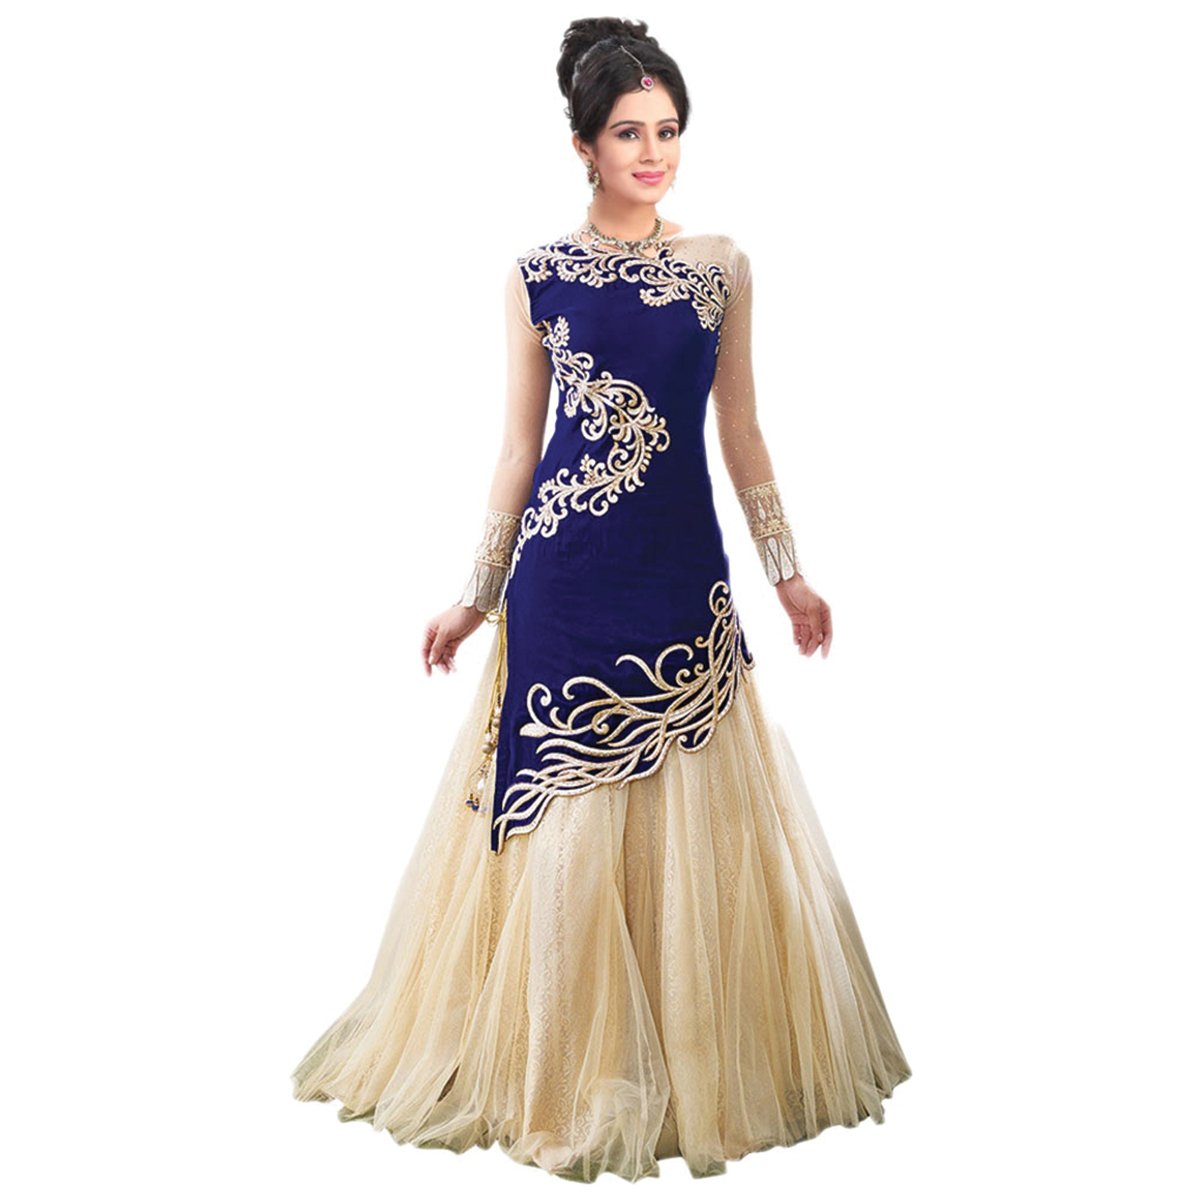 Blue net embroidered semi stitched party-wear-gowns - Tenet Retail - 801518 2fd7242c7